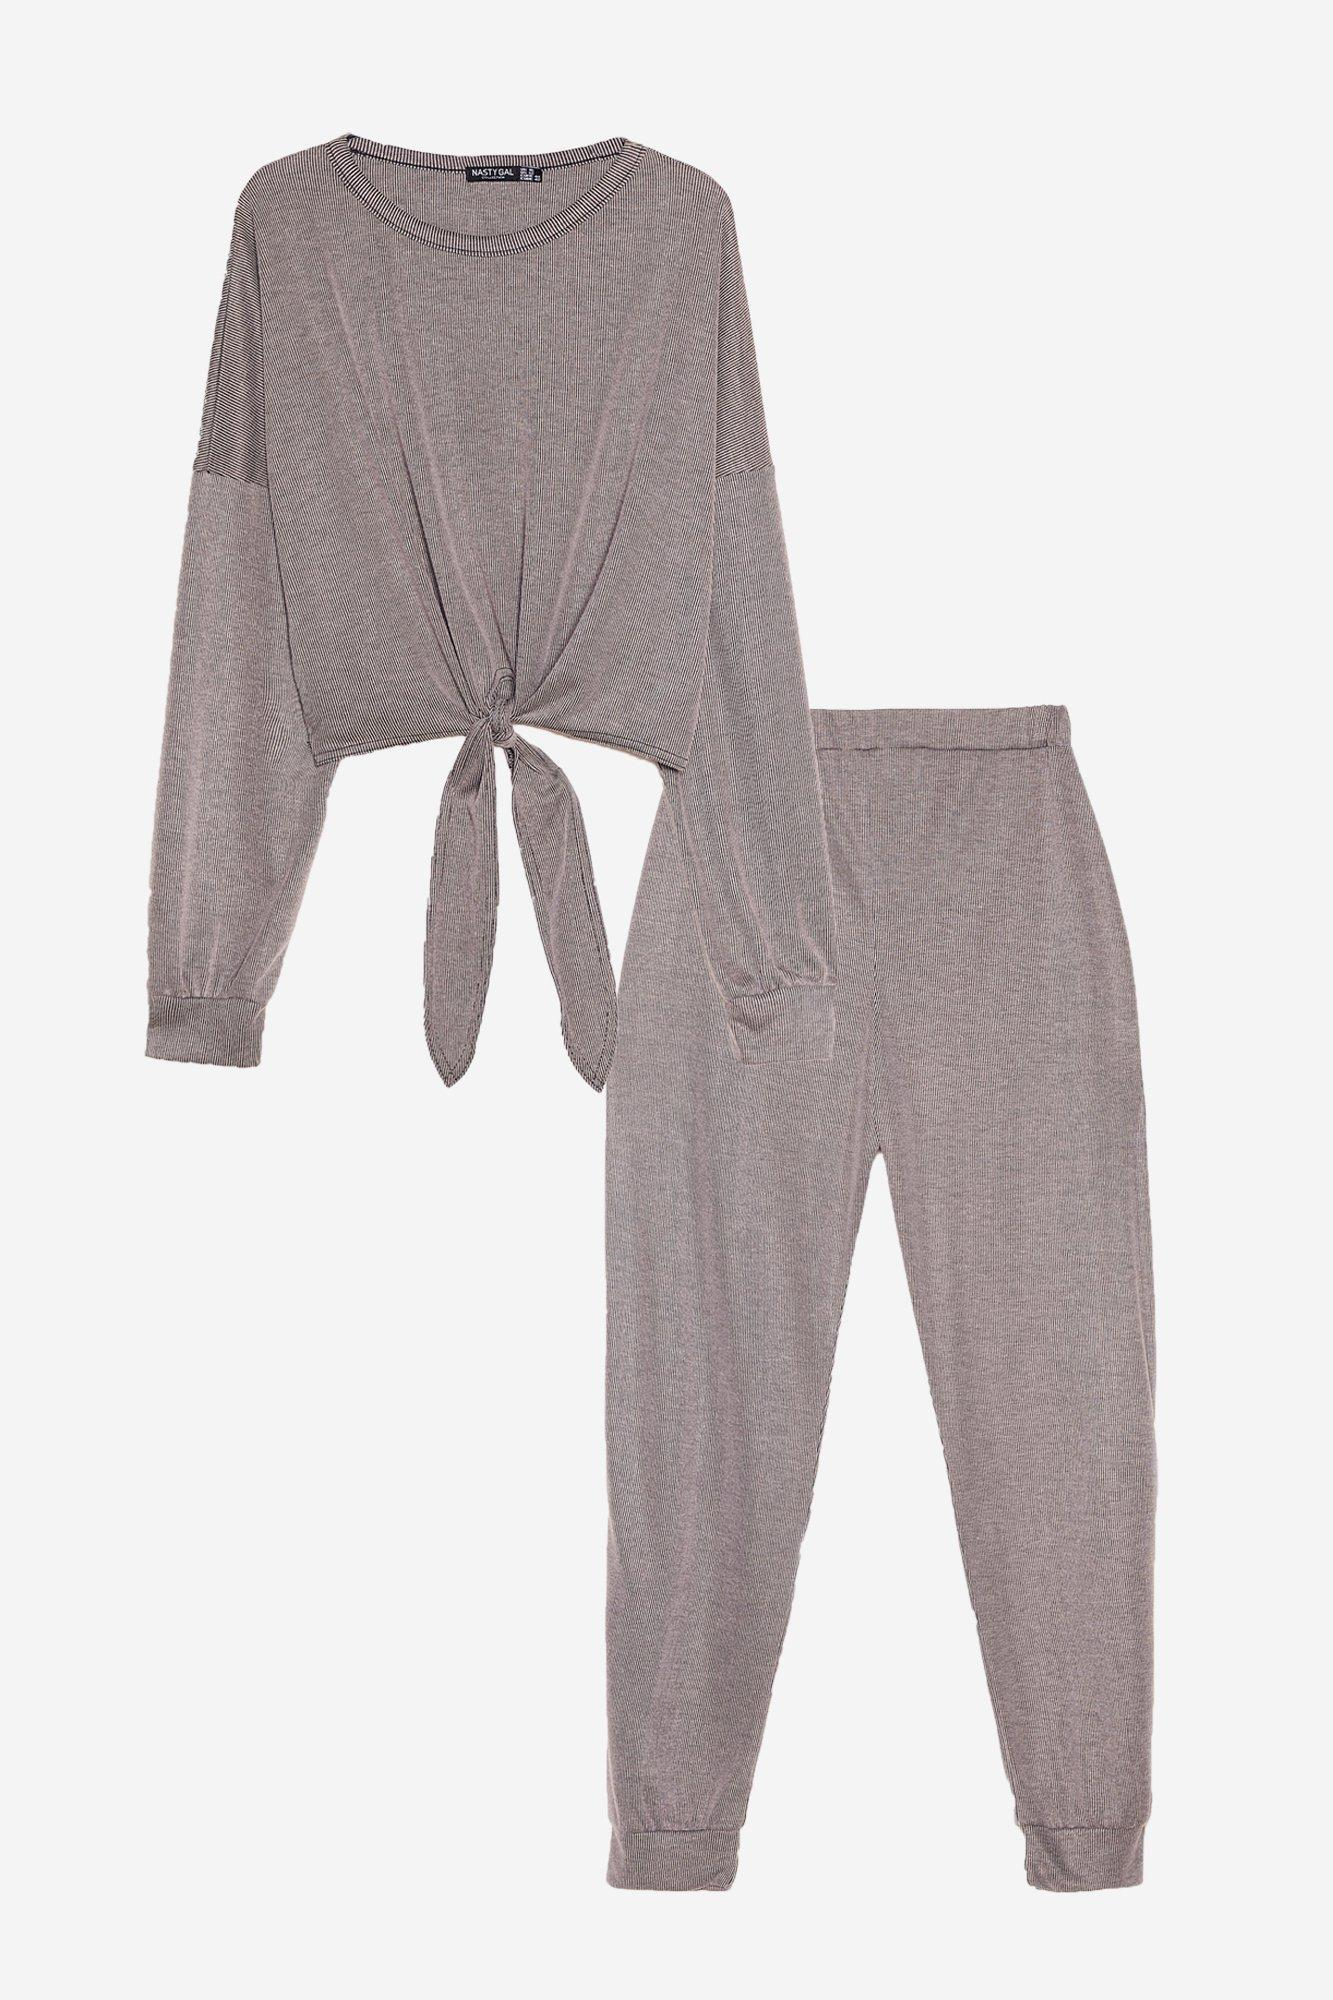 Tie Miss You Baby Plus Ribbed Top and Jogger Set 12